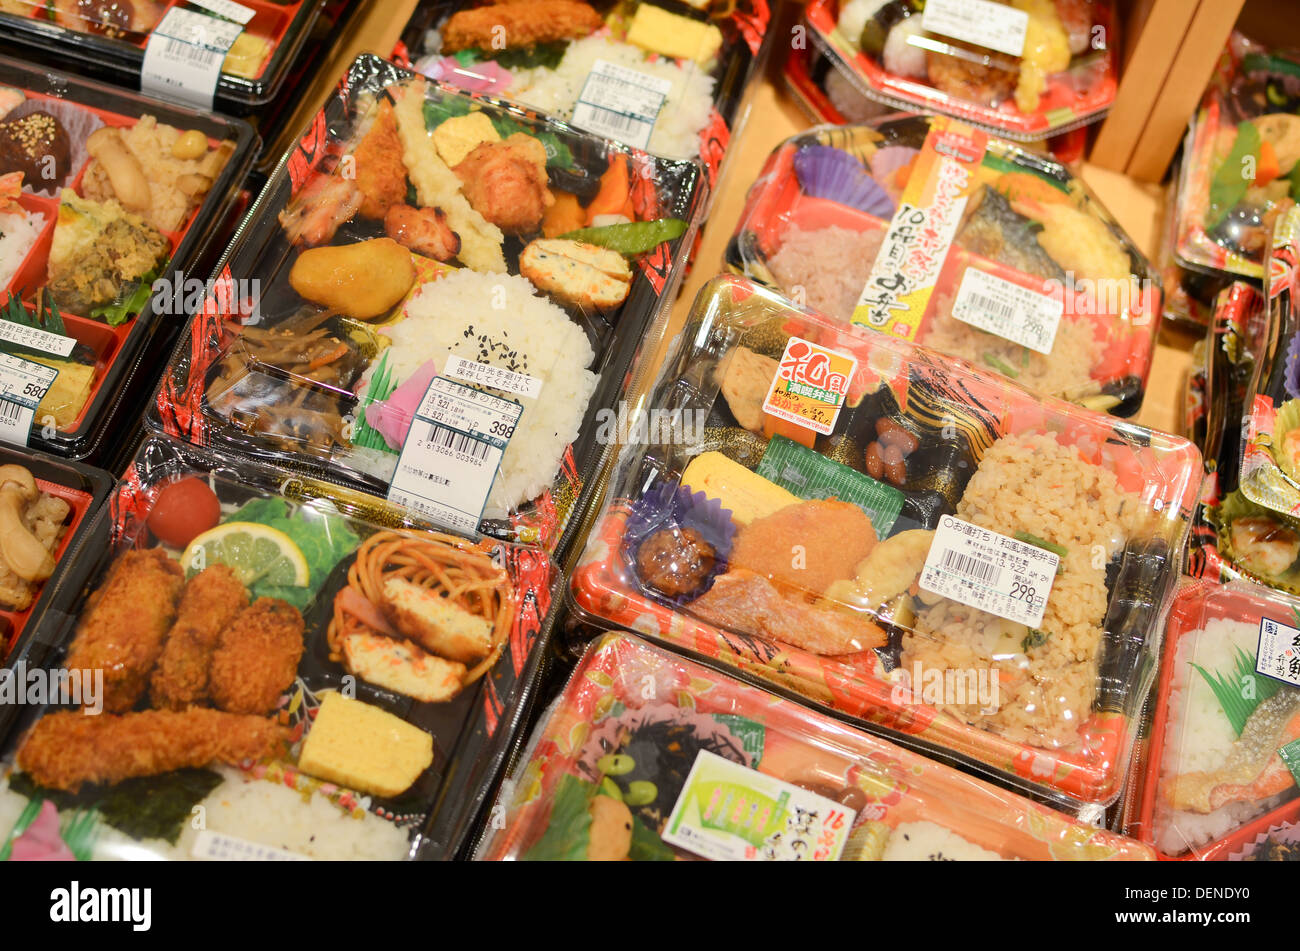 japanese bento lunches for sale in a supermarket in japan stock photo royalty free image. Black Bedroom Furniture Sets. Home Design Ideas